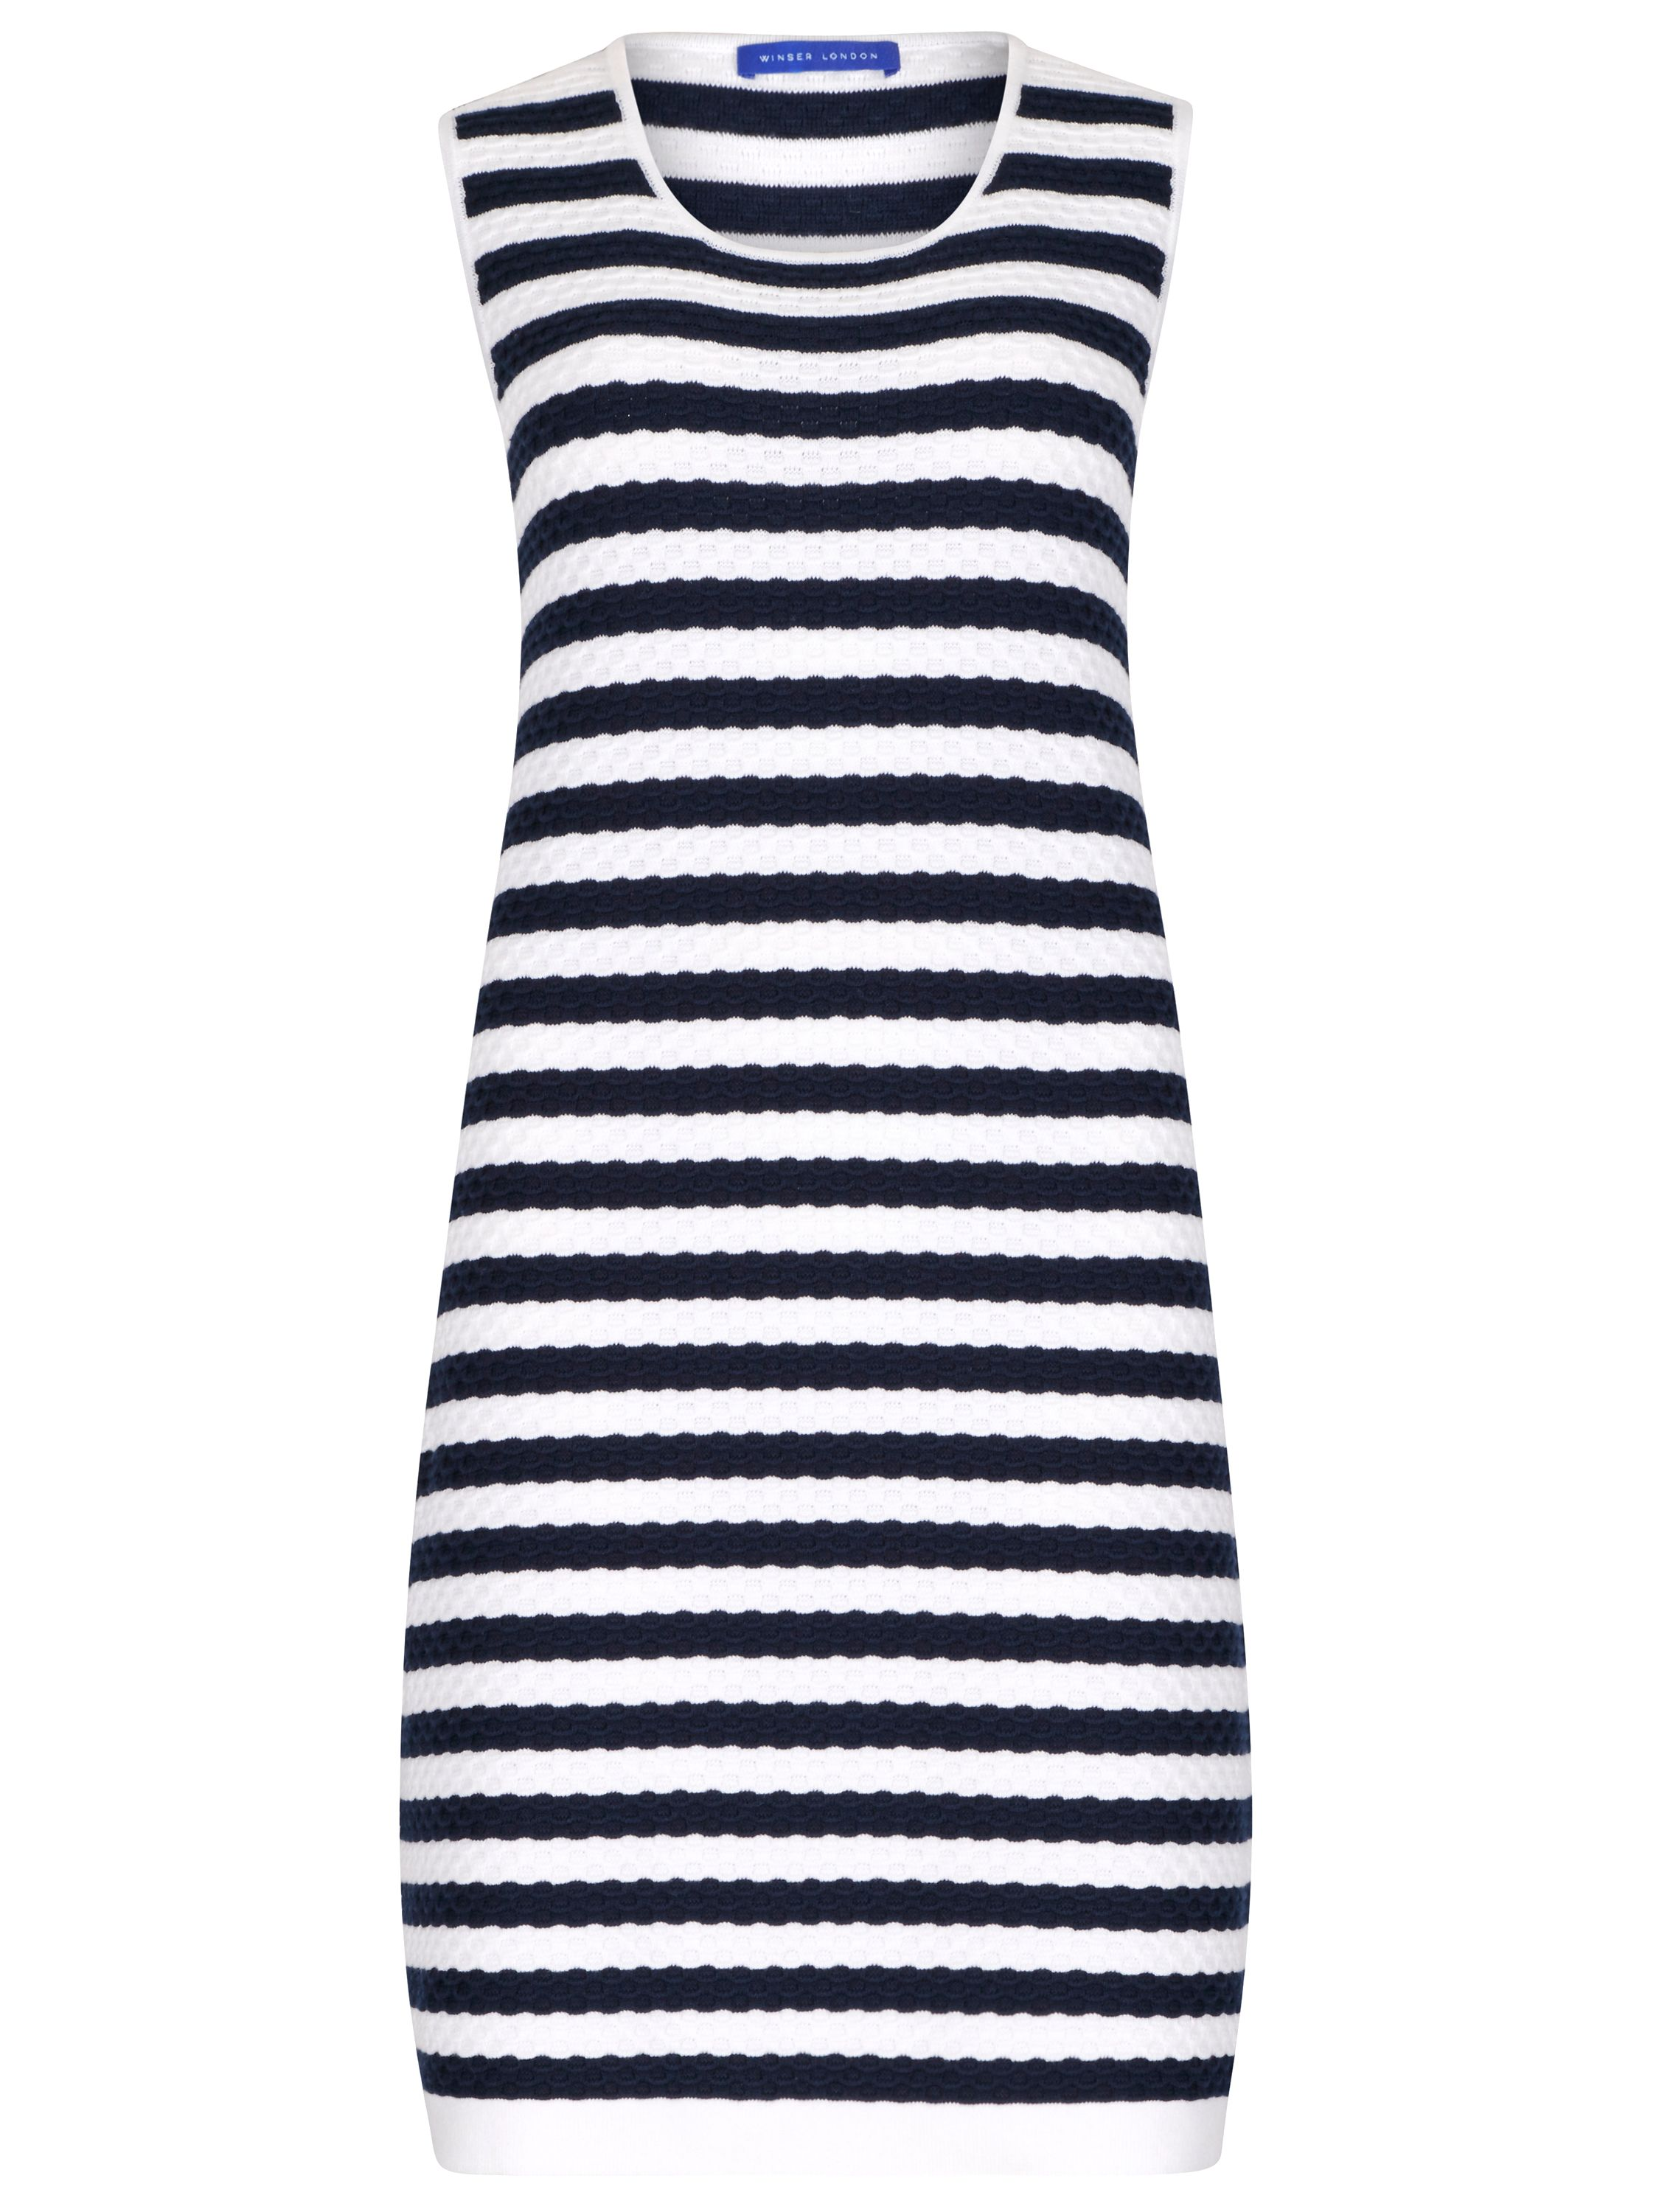 Winser London Cotton Textured Stripe Dress, Blue